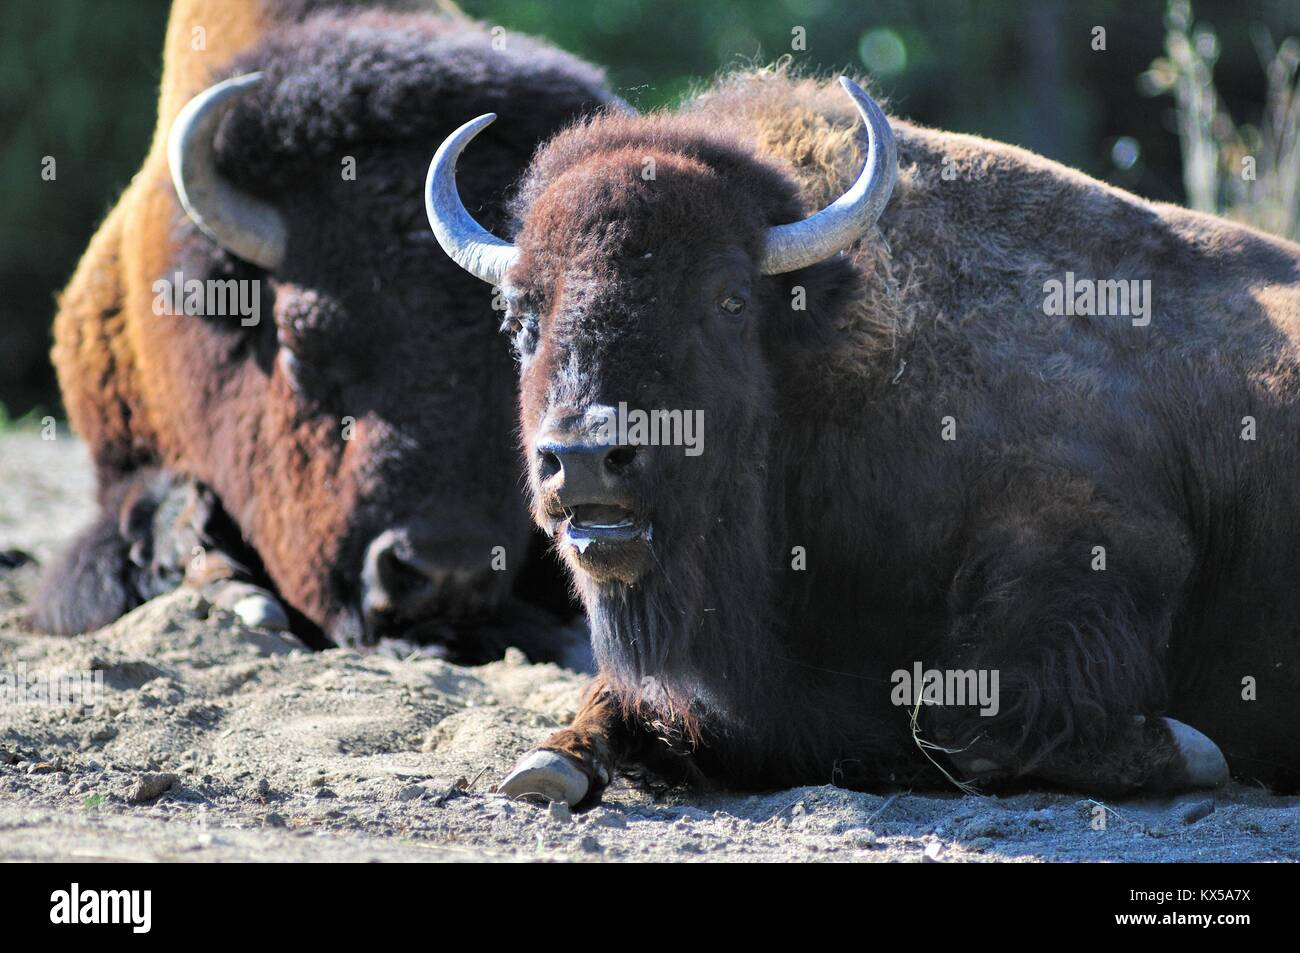 A young American bison or buffalo (Bison bison) among a small herd at Brookfield Zoo near Chicago. Brookfield, Illinois, Stock Photo